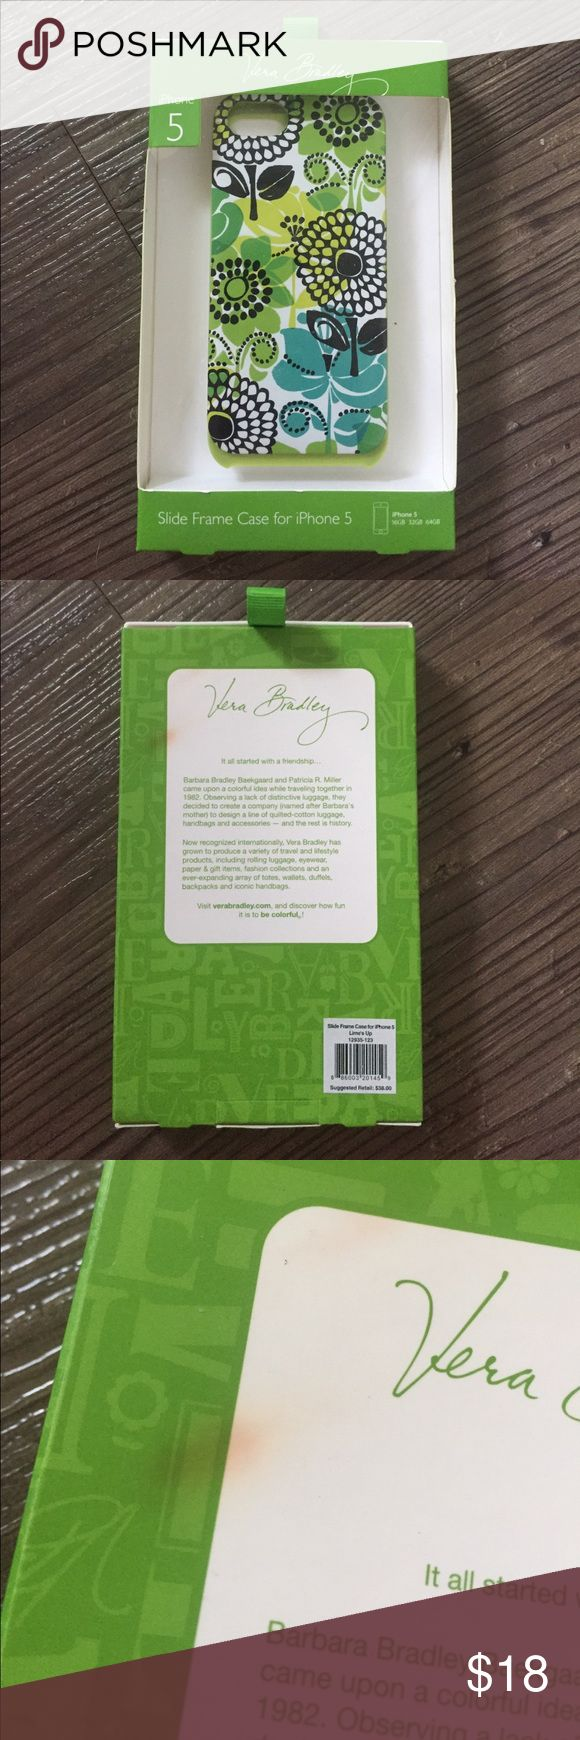 🔥SALE🔥Vera Bradley iPhone 5 Lime's Up NWT Vera Bradley iPhone 5 case in the Lime's Up pattern. There is a slight discoloration on the box which is reflected in the price. I am in the process of moving and open to offers. Vera Bradley Accessories Phone Cases